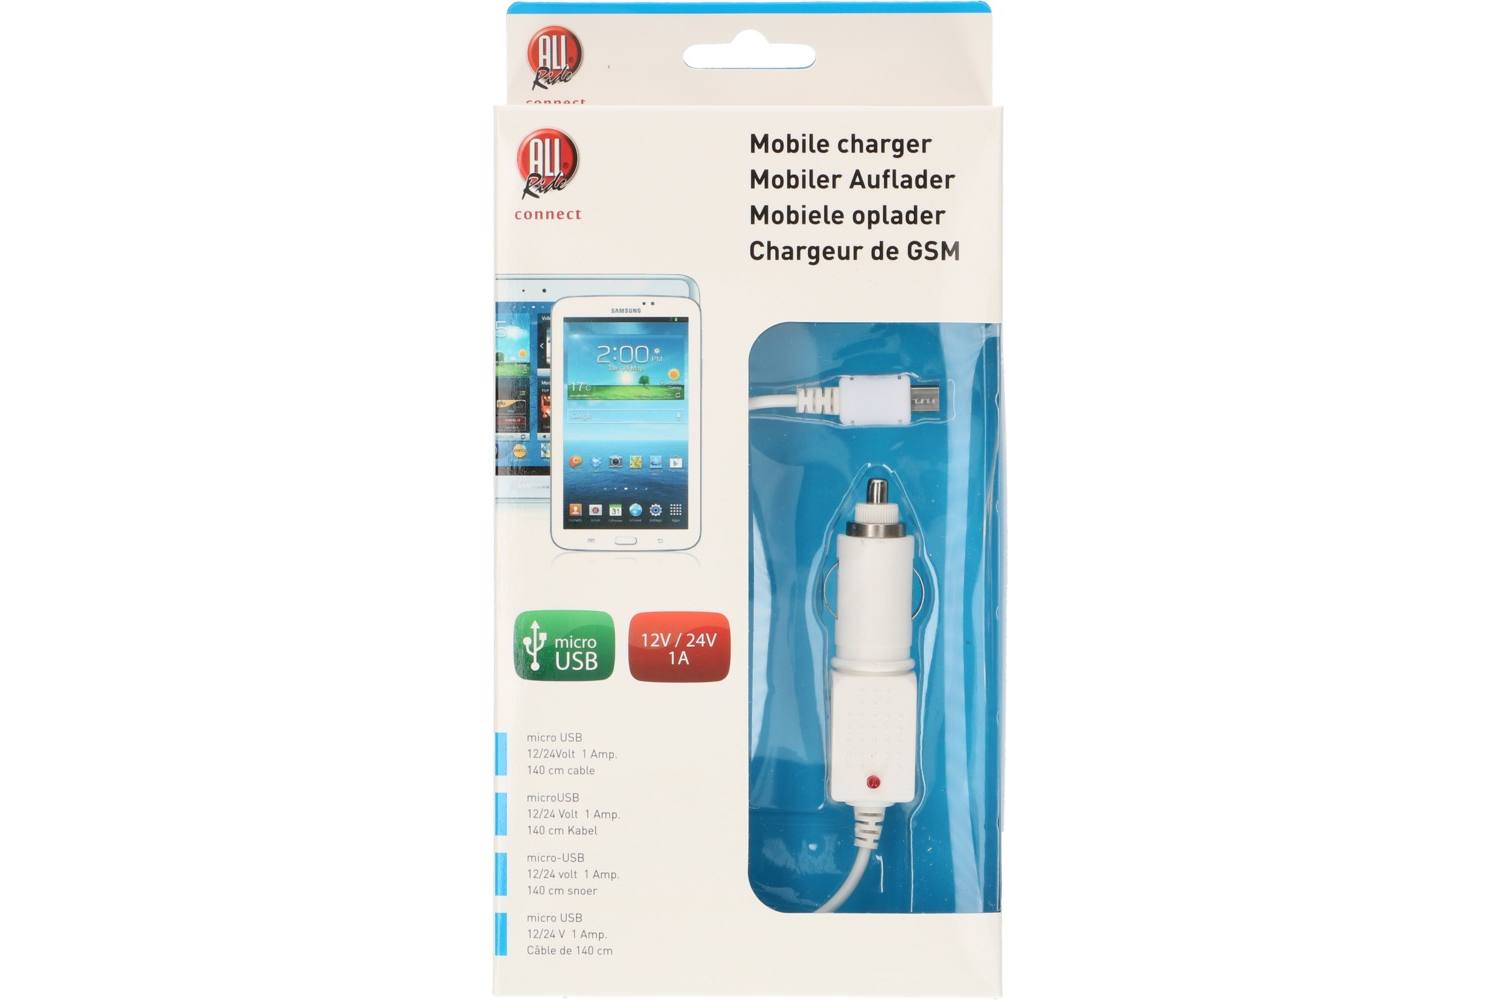 Chargeur, AllRide, micro usb 2